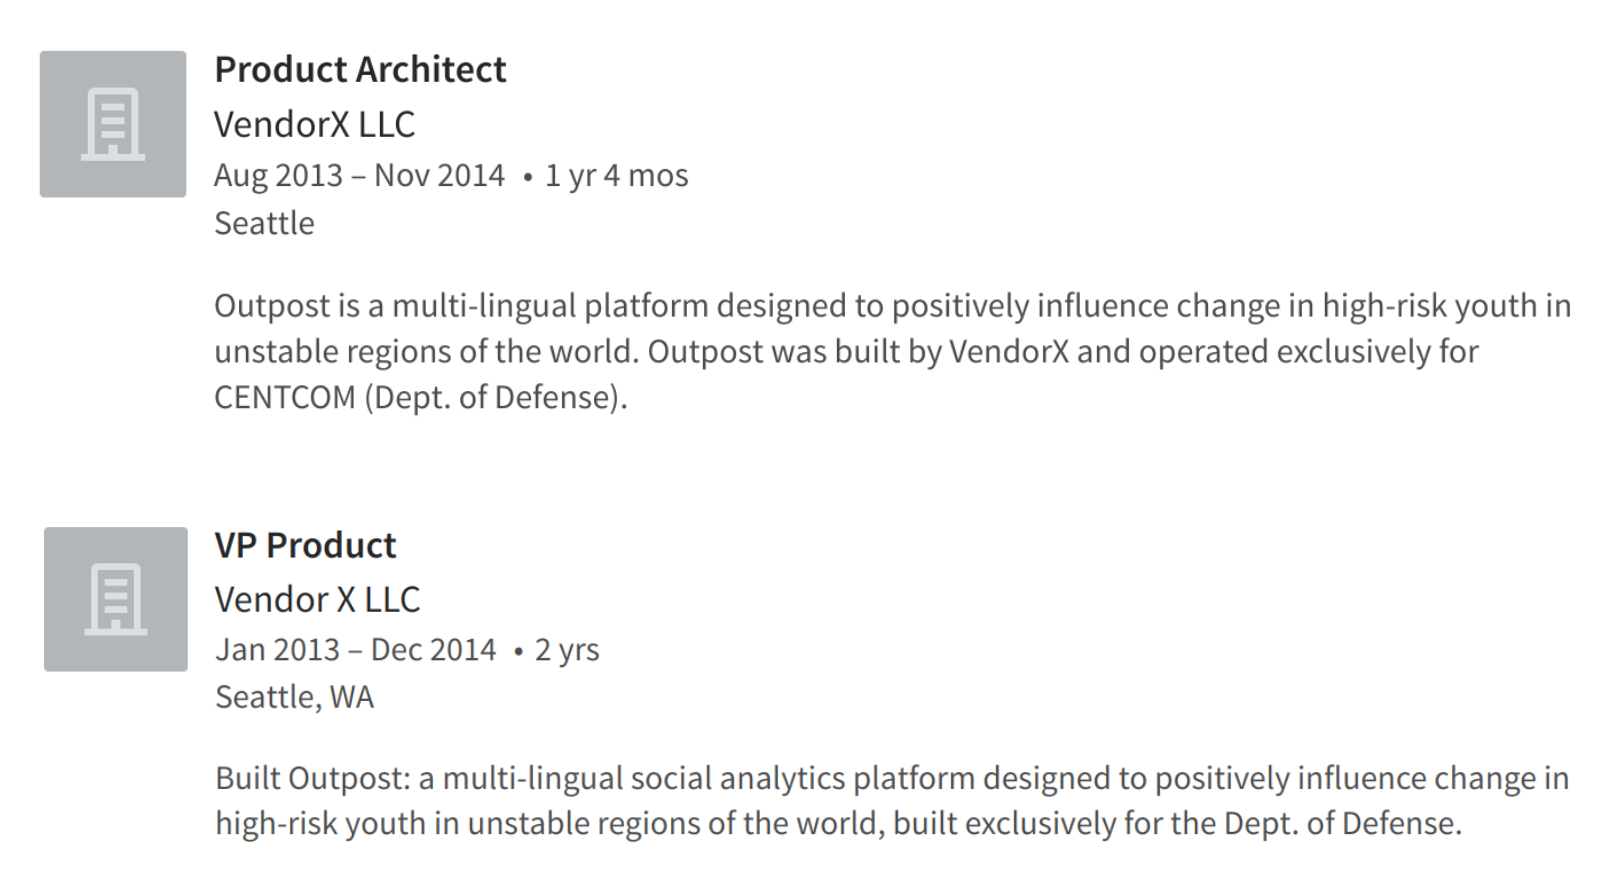 Descriptions of VendorX's work on Outpost, via employee LinkedIn pages.